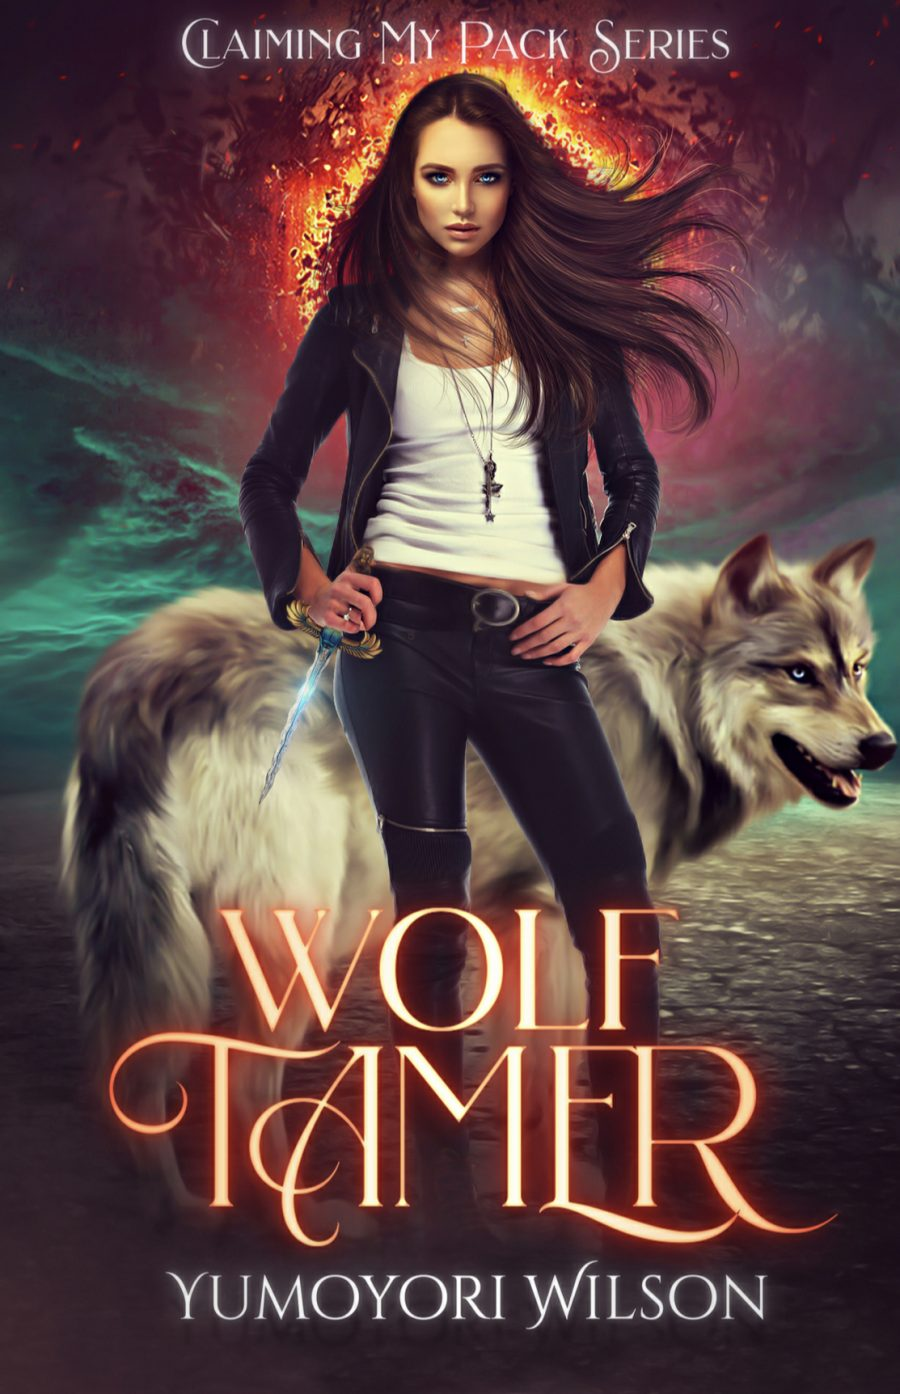 Wolf Tamer by Yumoyori Wilson - A Book Review #BookReview #SlowBurn #SlowBuild #RH #WhyChoose #PNR #Shifters #ReverseHarem #KindleUnlimited #KU